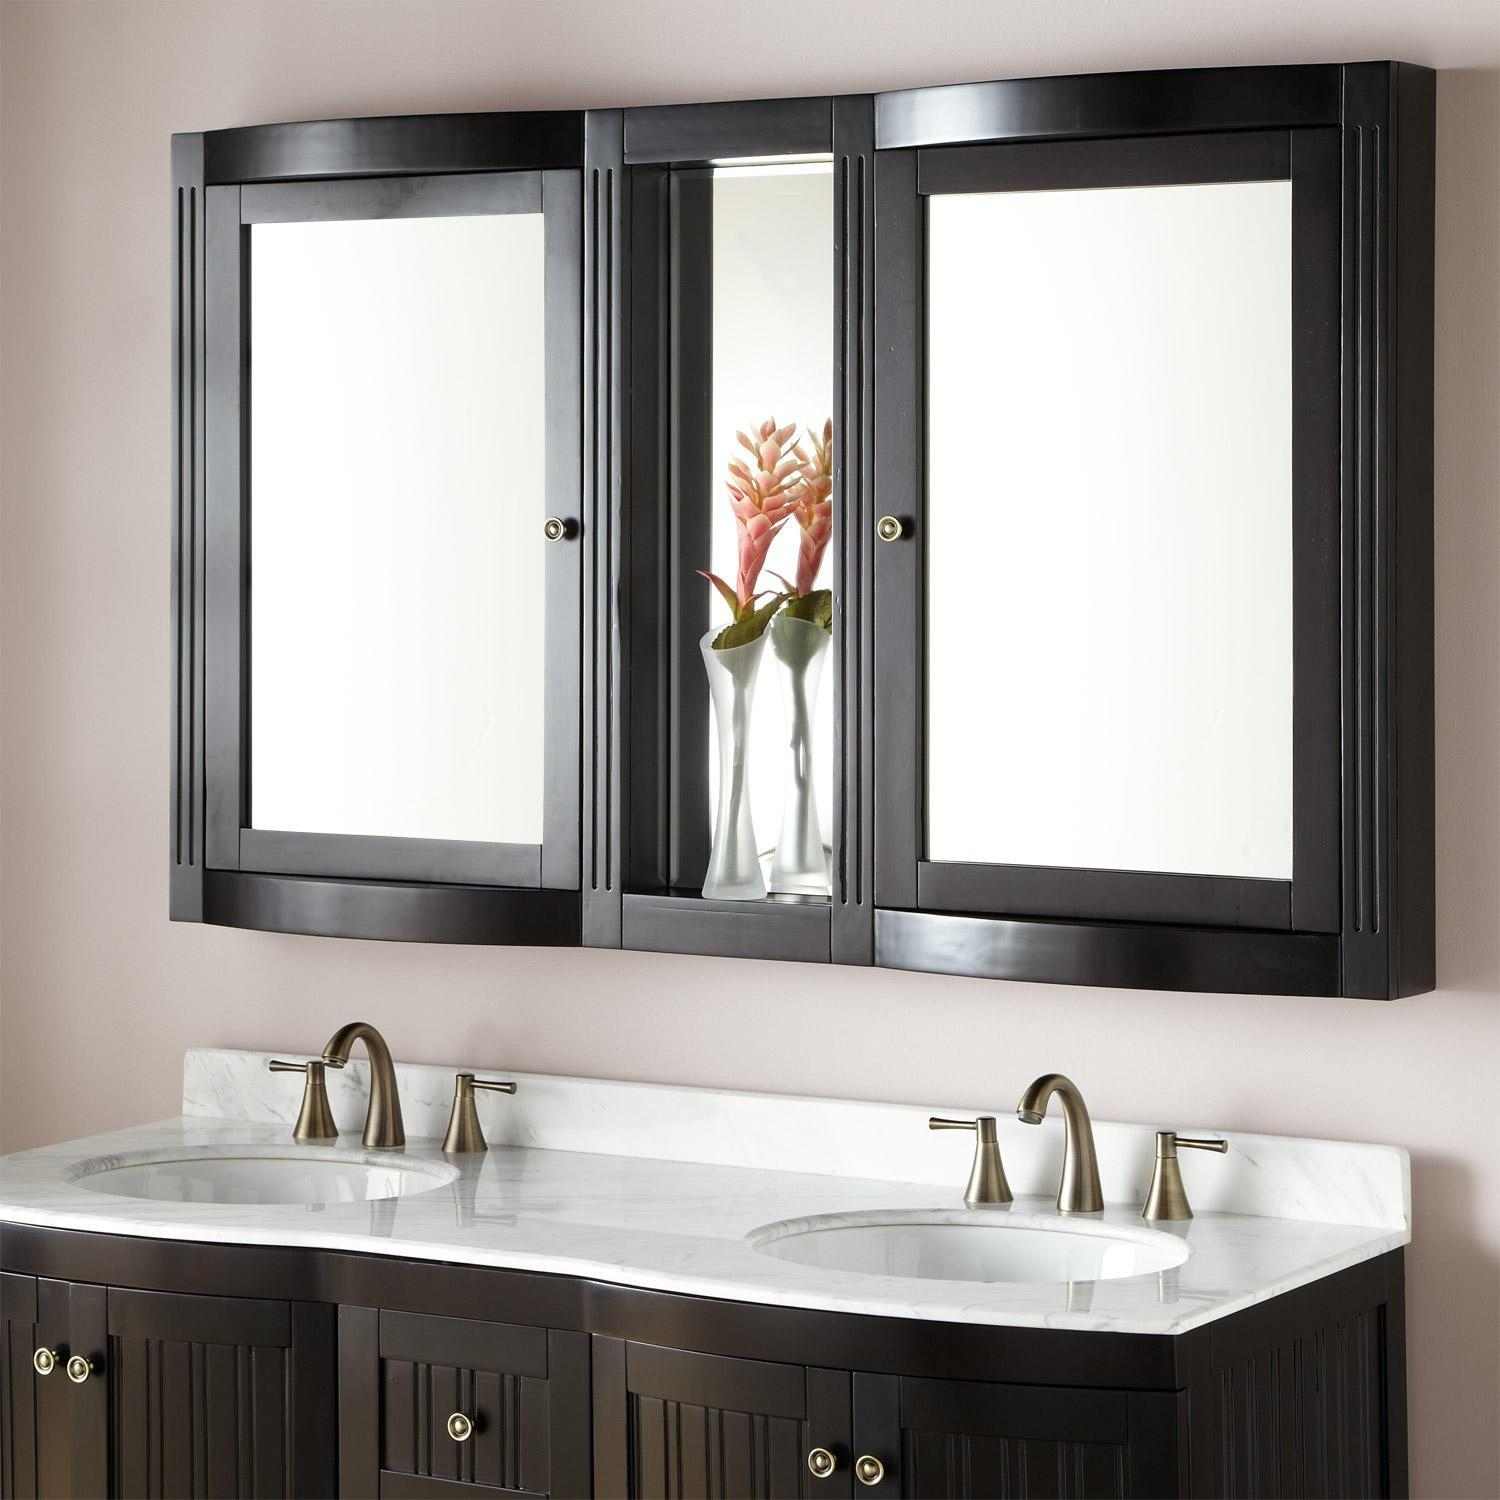 Bathroom Cabinets : Espresso Lighted Bathroom Cabinets With Regarding Bathroom Cabinets Mirrors (Image 4 of 20)